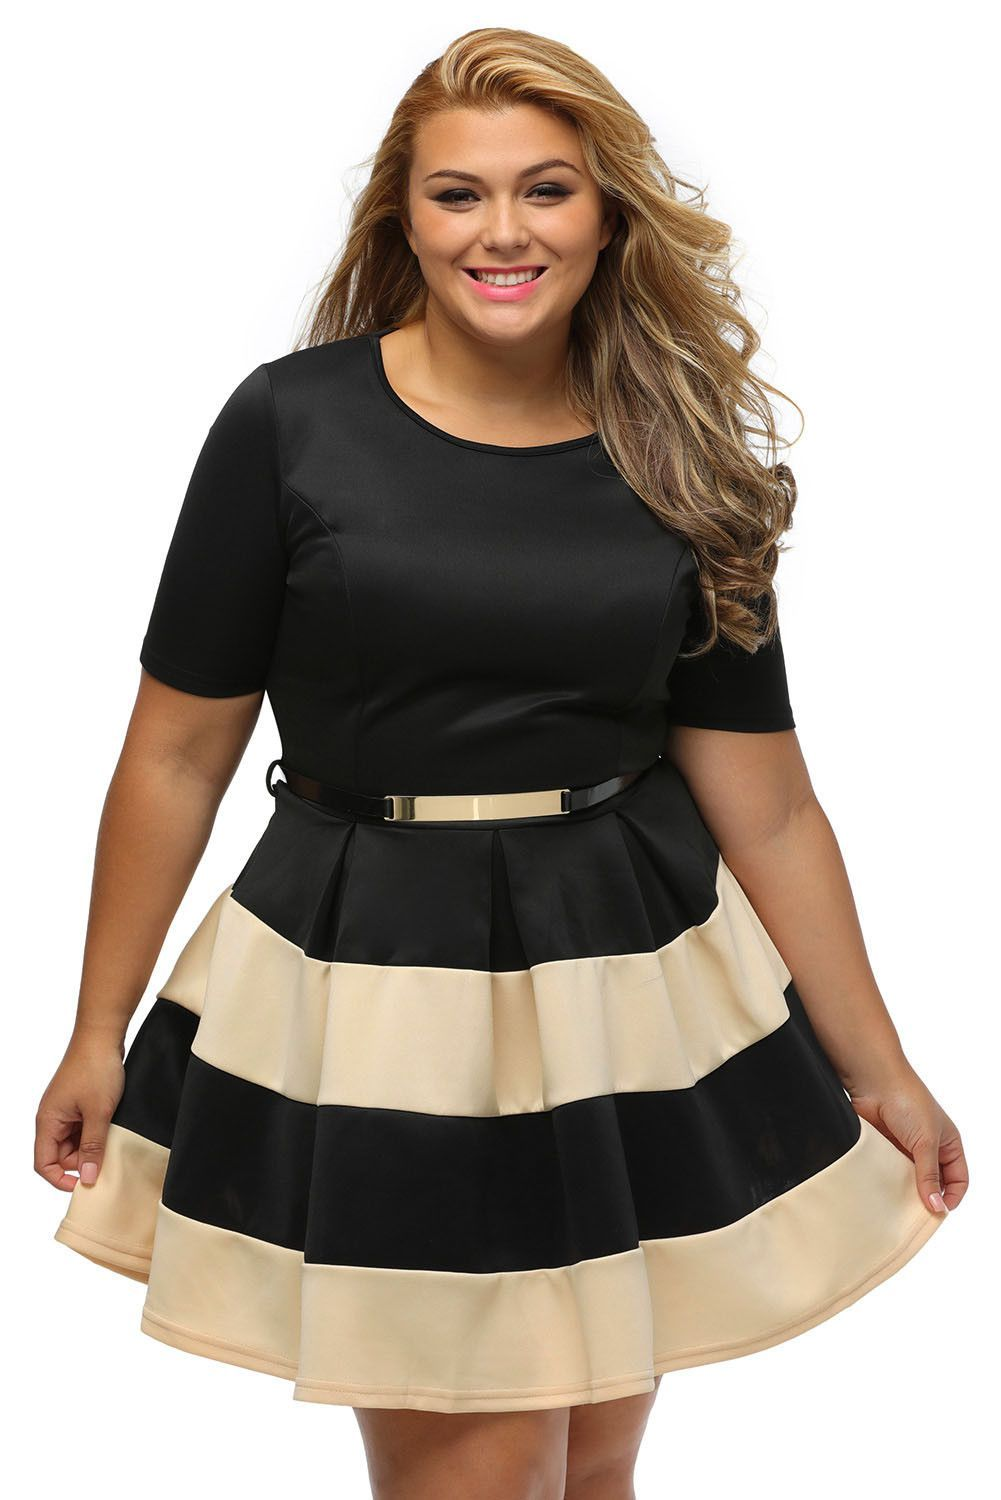 Robes Grandes Tailles Patineuses Abricot Noir a Rayures Ceinture Pas Cher  www.modebuy.com  Modebuy  Modebuy  Abricot  Noir  me  Noir fc752ad23f2